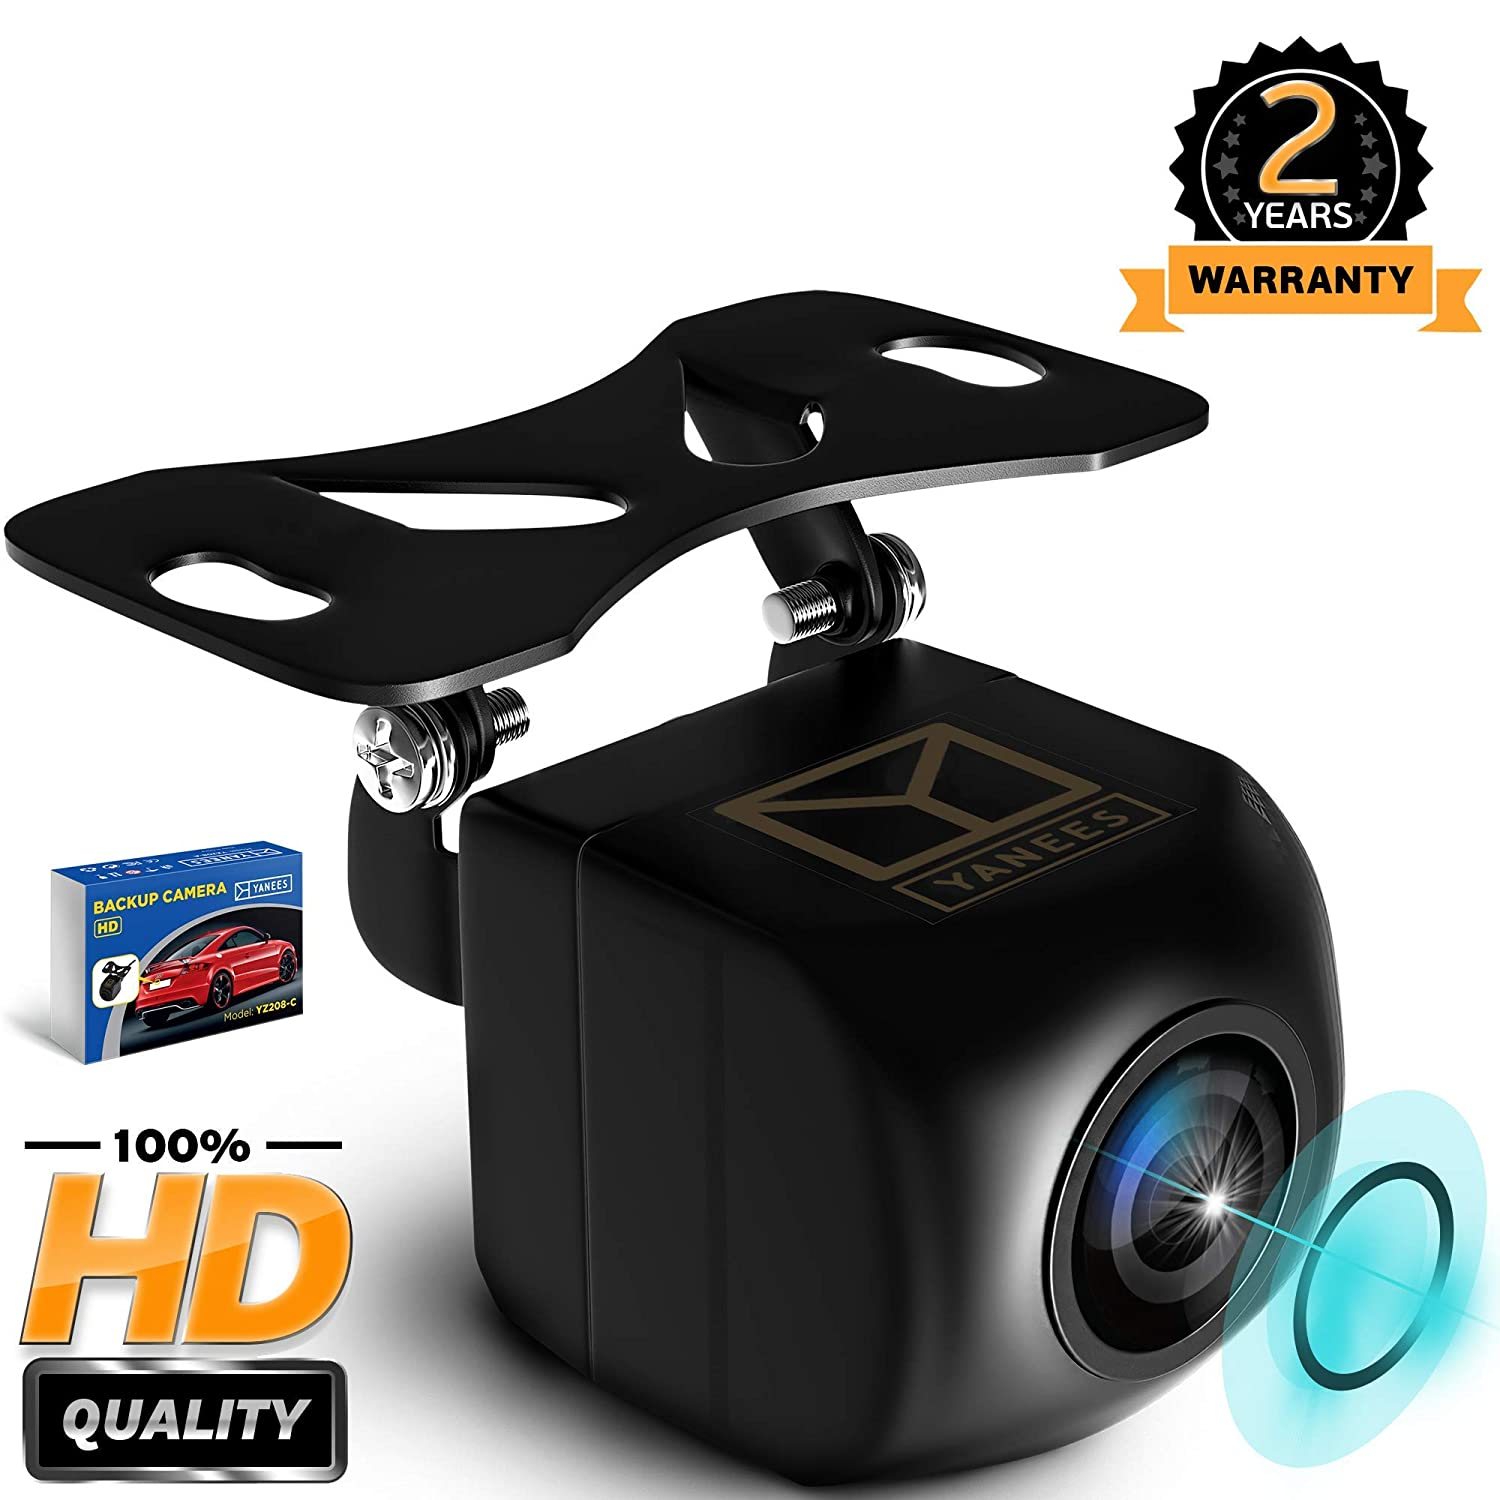 Back Up Cameras >> Yanees Backup Camera Night Vision Hd 1080p Car Rear View Parking Camera Best 170 Wide Angel Reverse Auto Back Up Car Camera Fits All Vehicles